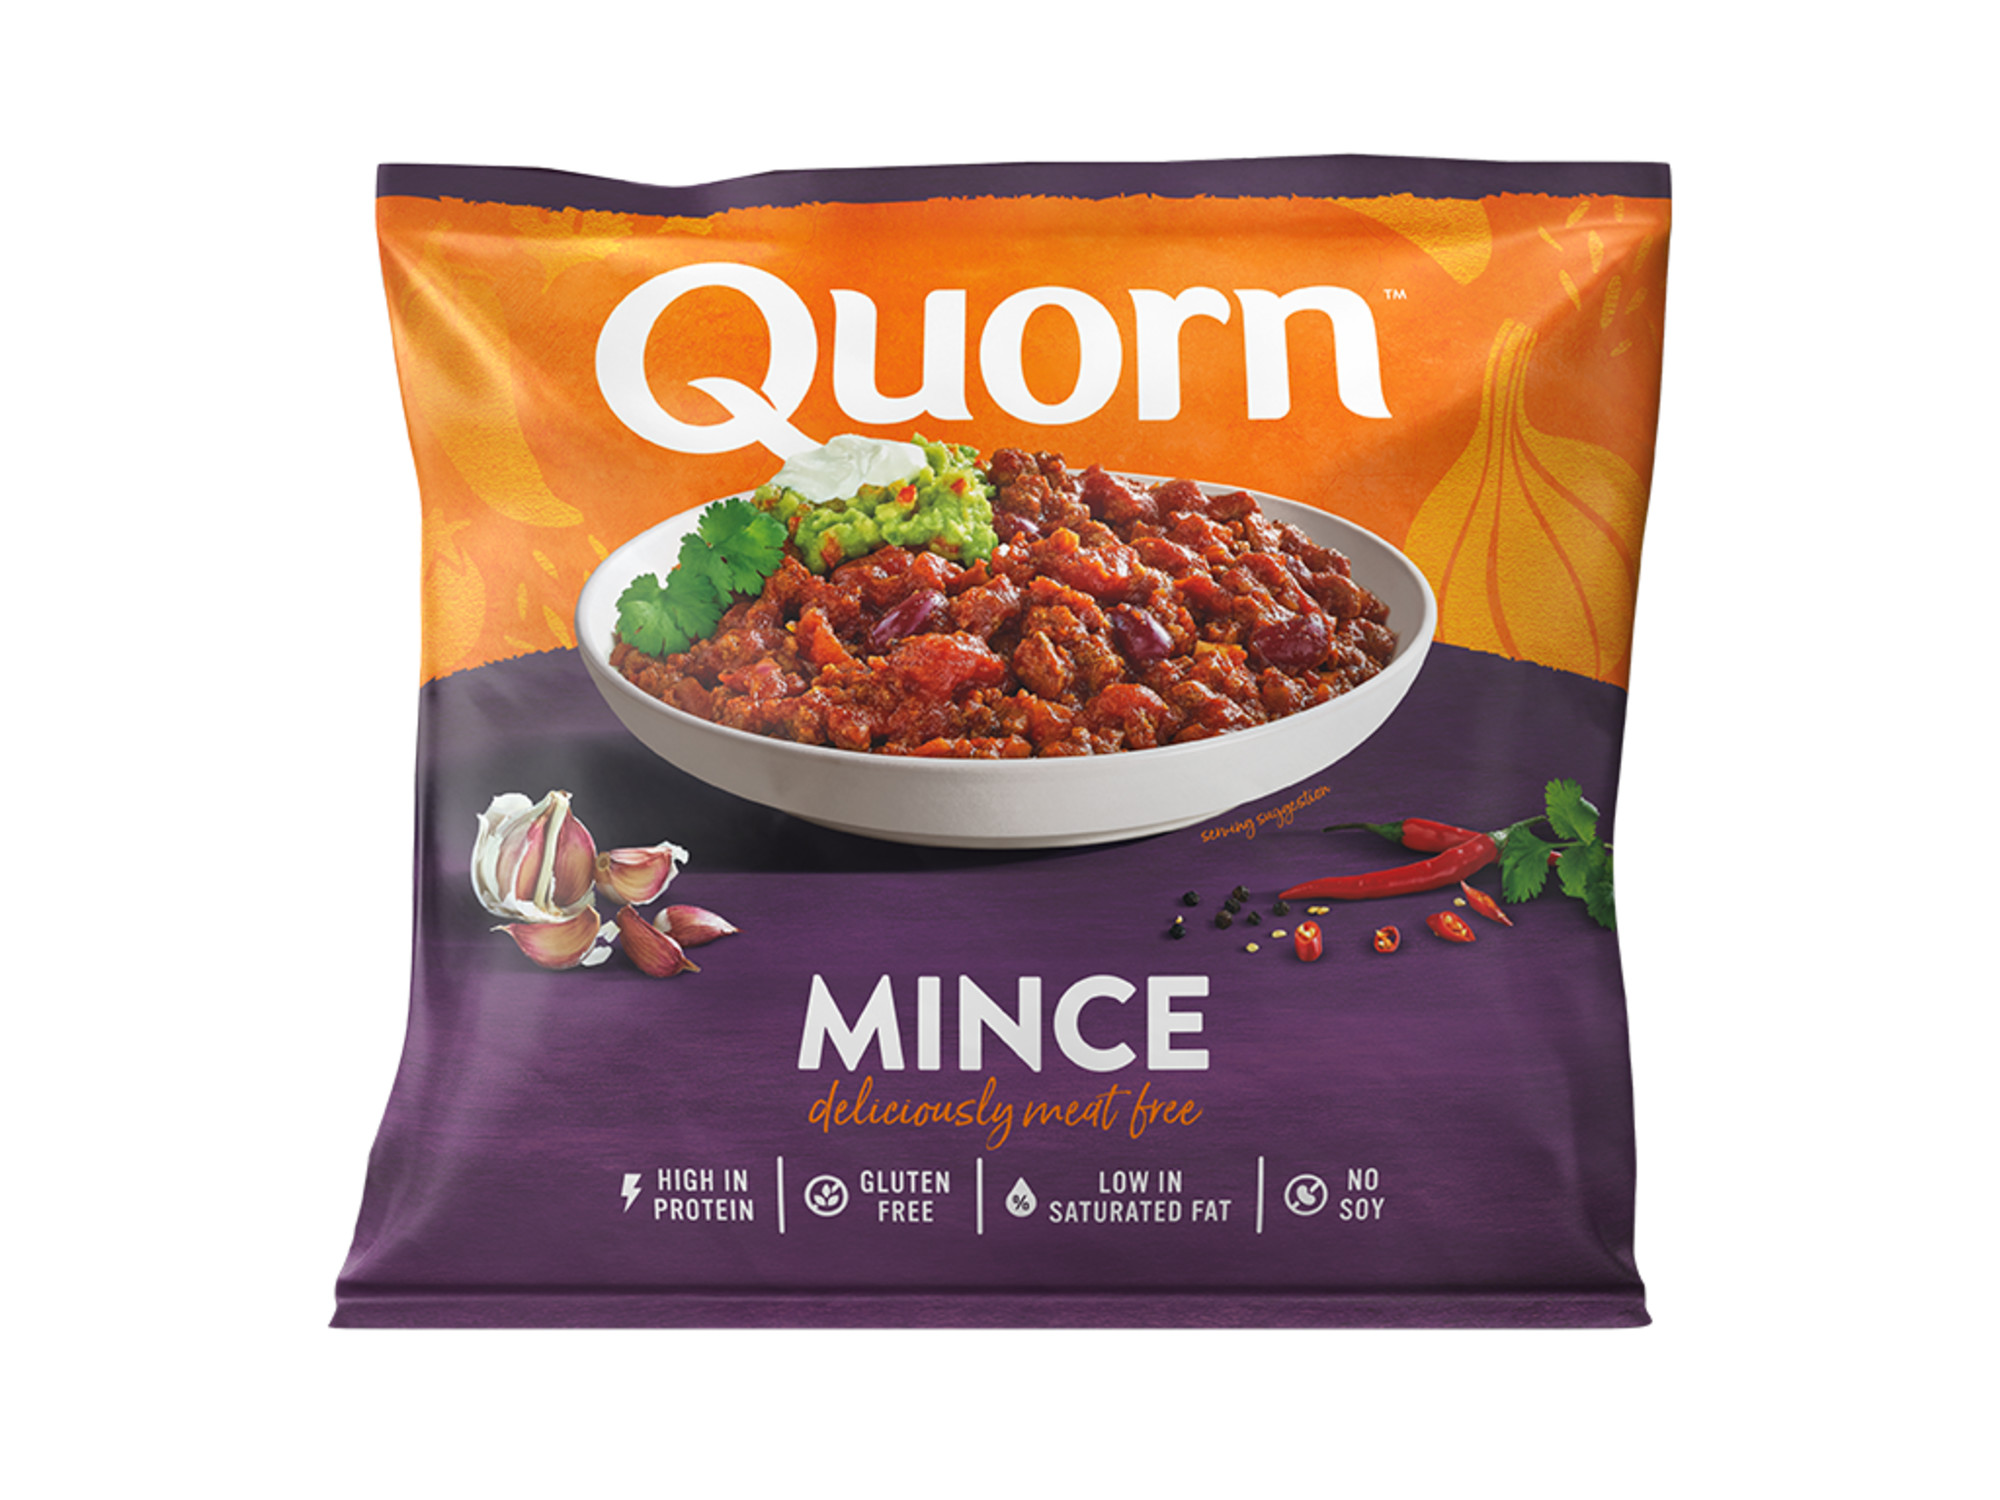 Meat Free Mince From Quorn Healthier Low Fat Alternatives